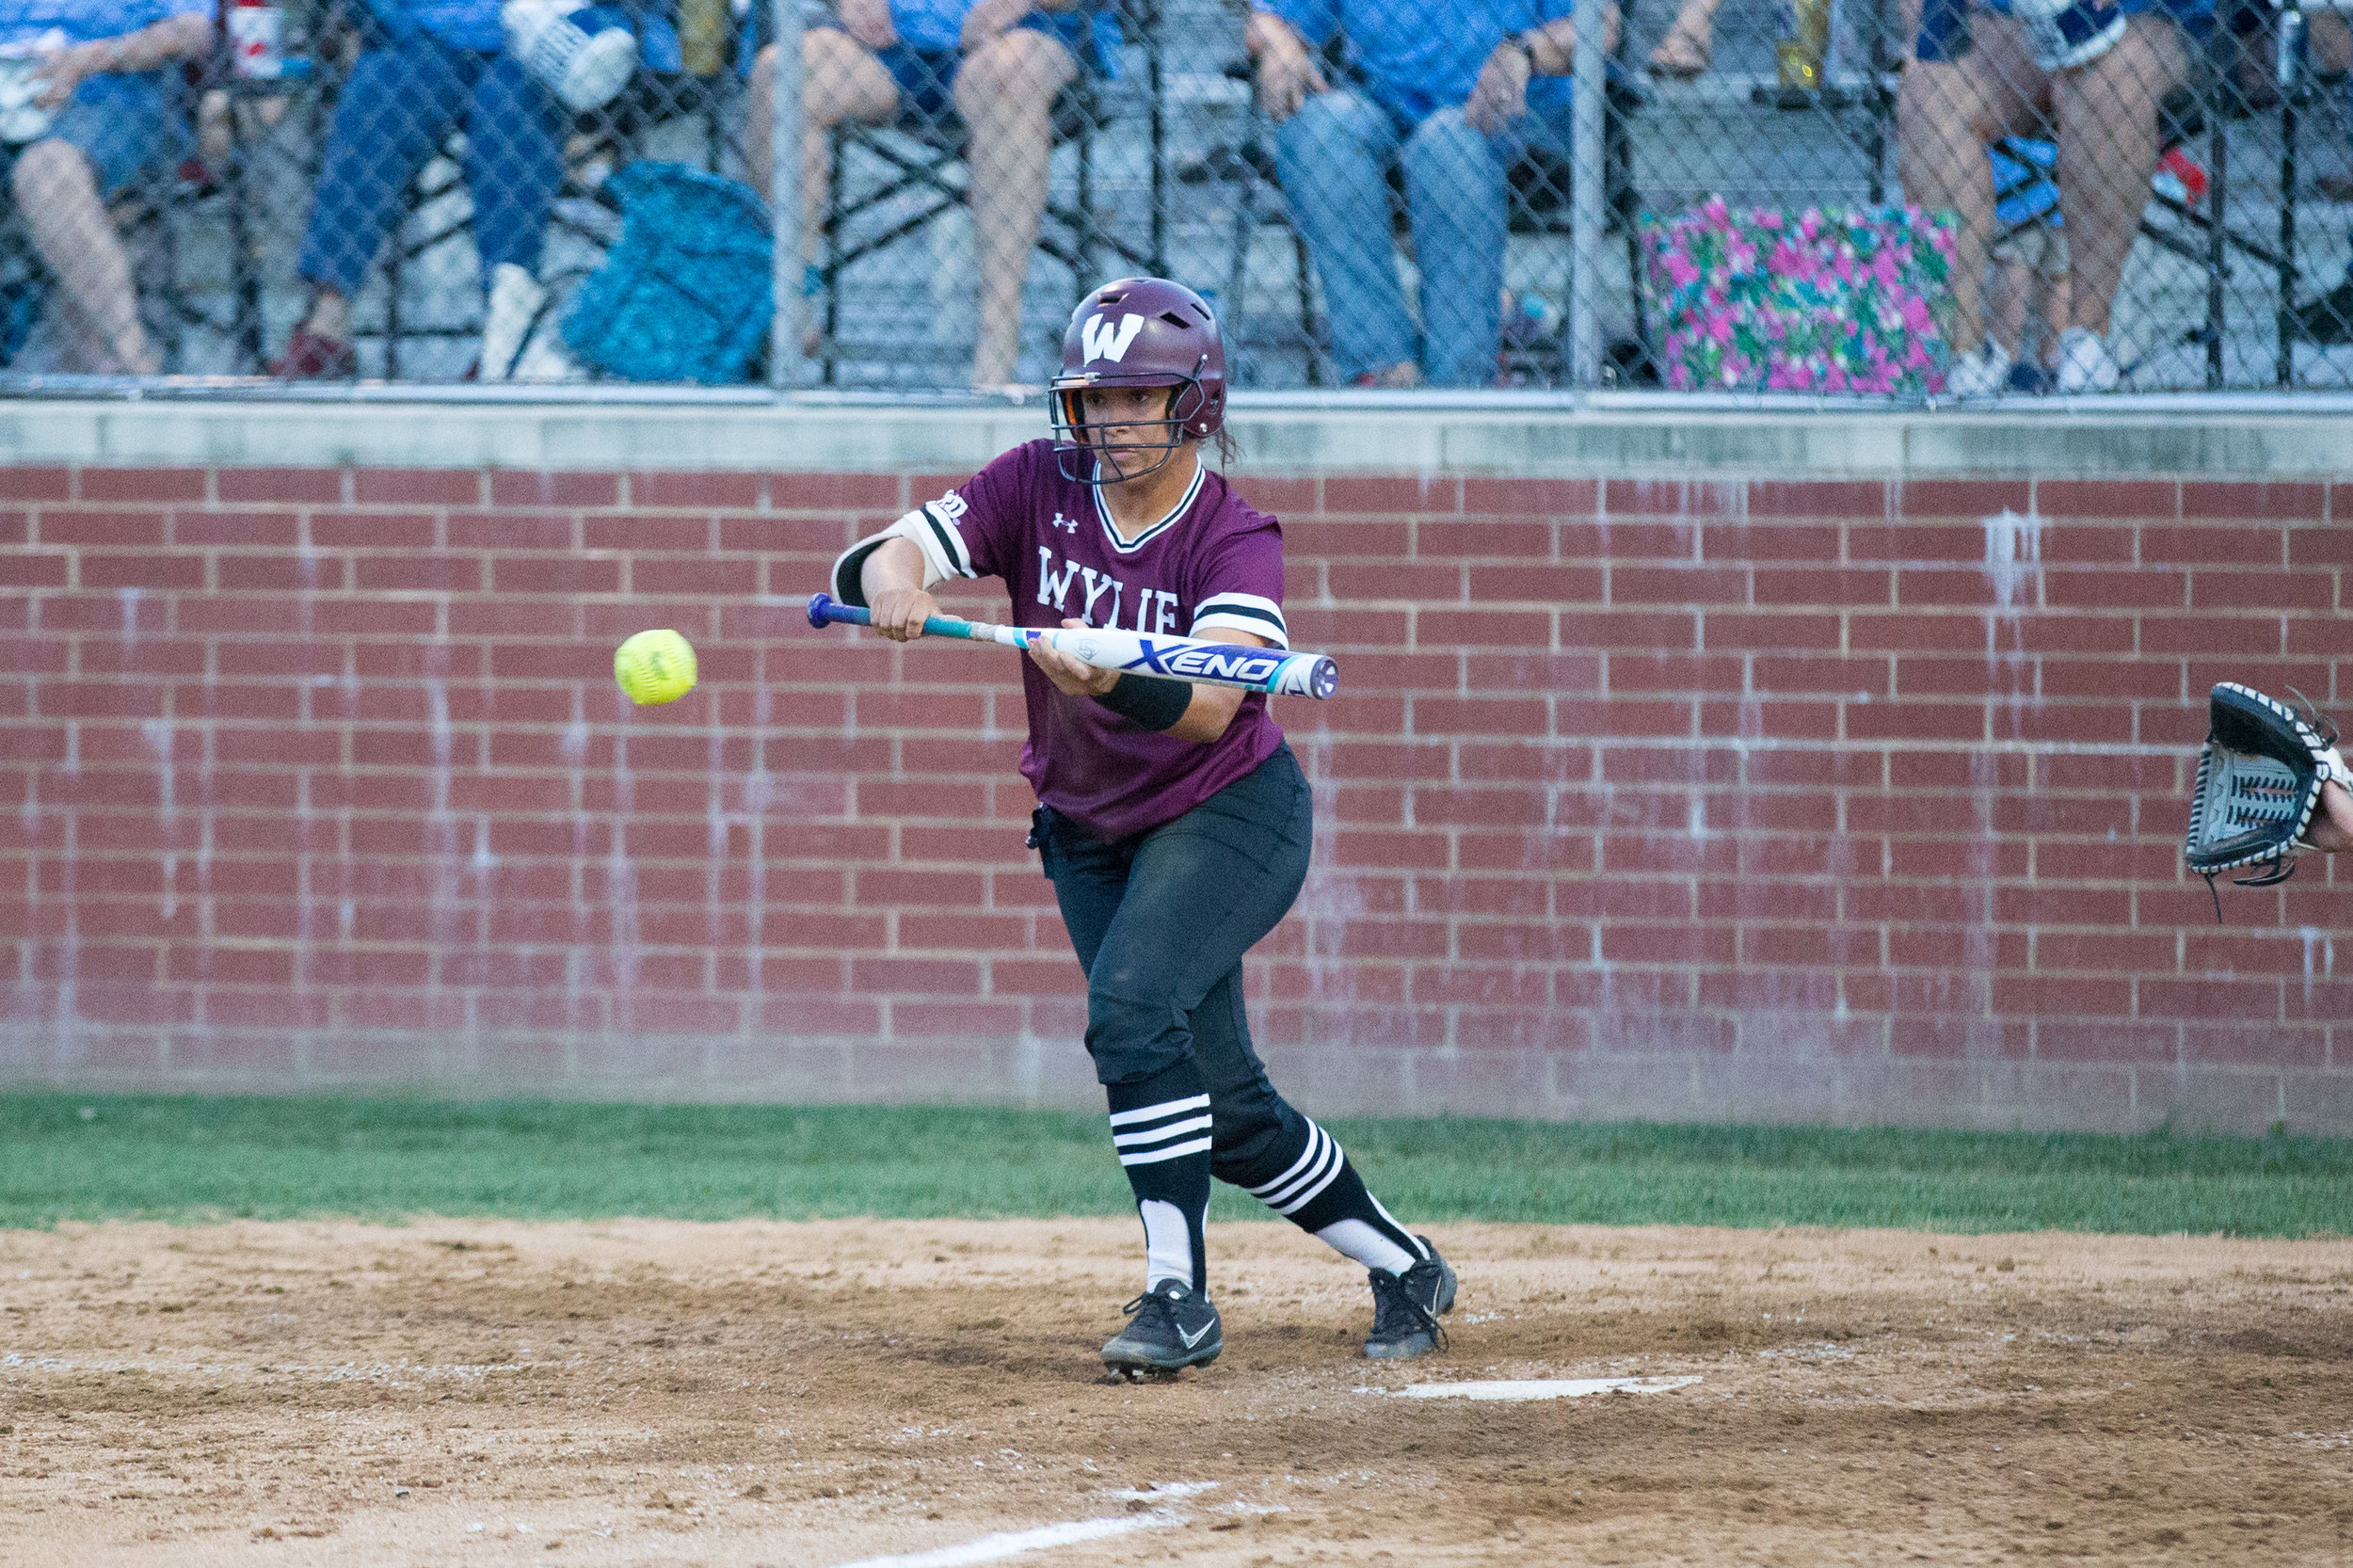 5_18 Wylie Softball-156.jpg